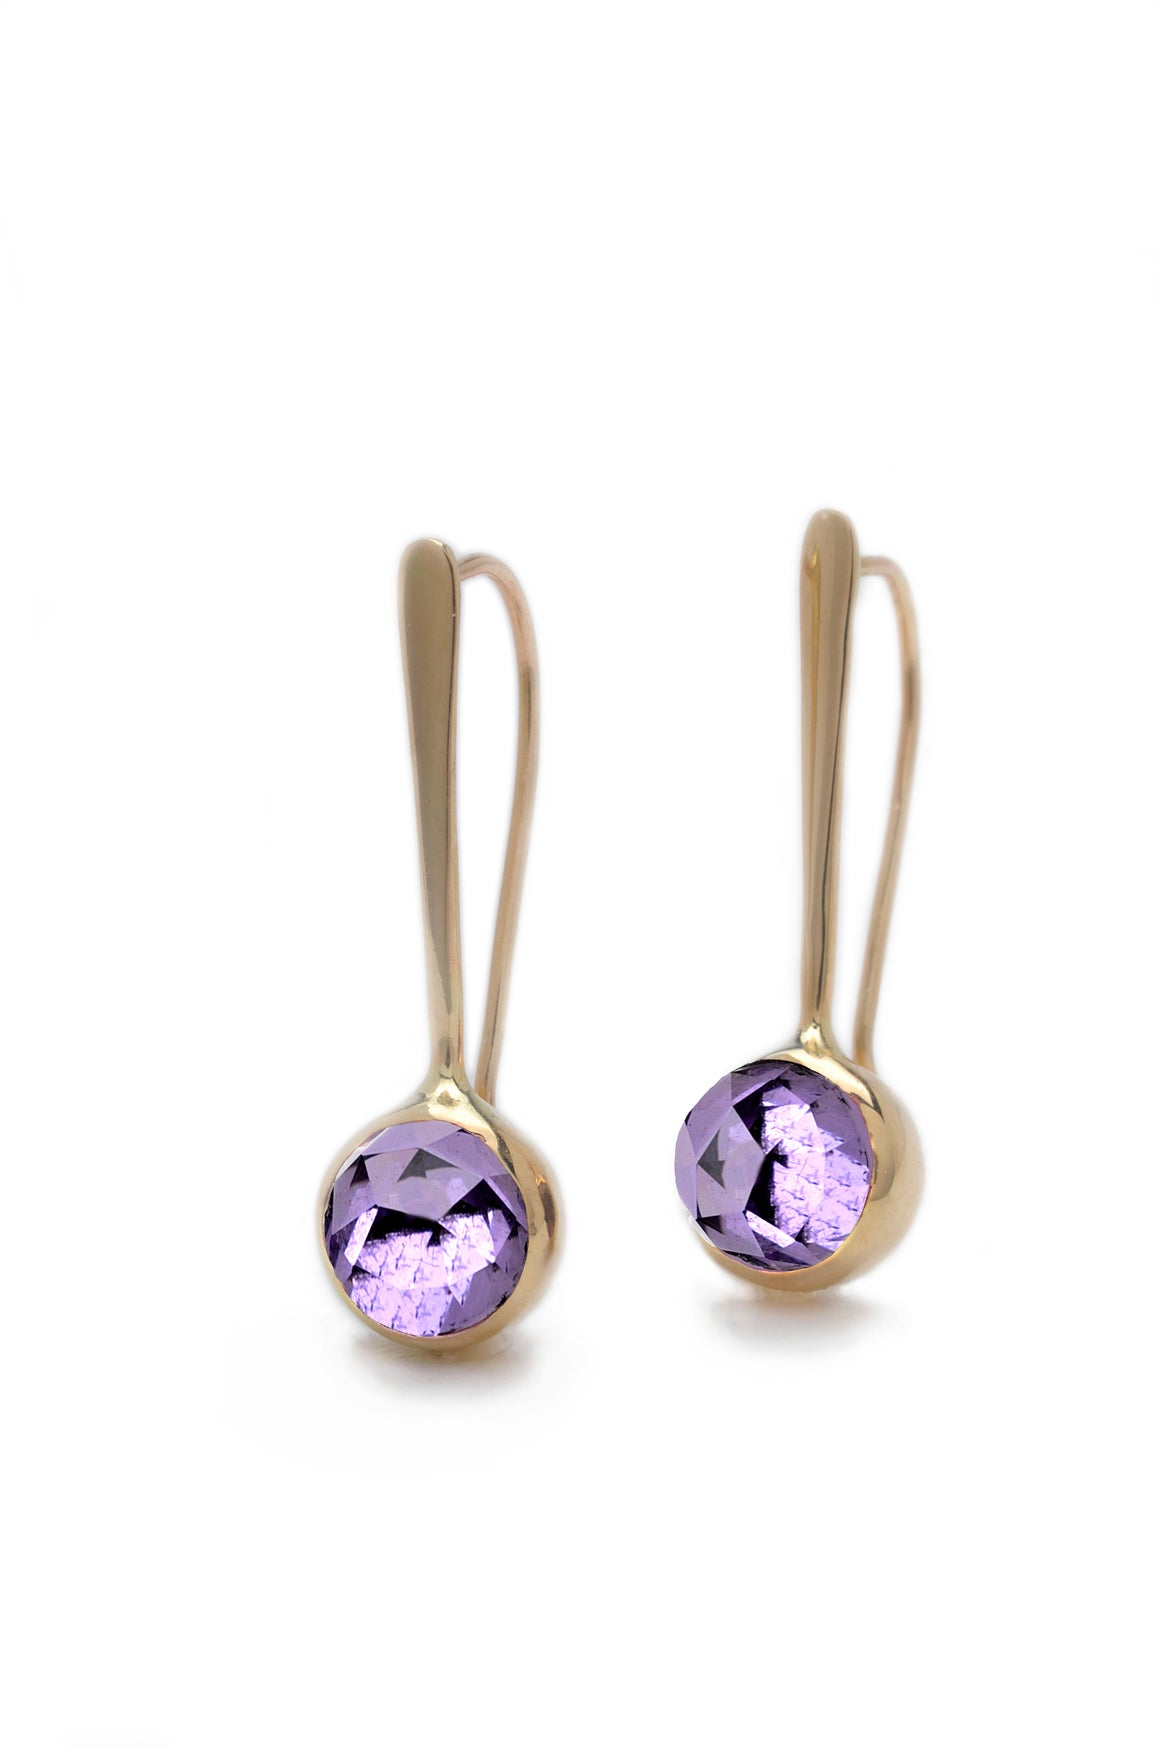 14k Drop Earrings With Rose Cut Amethyst